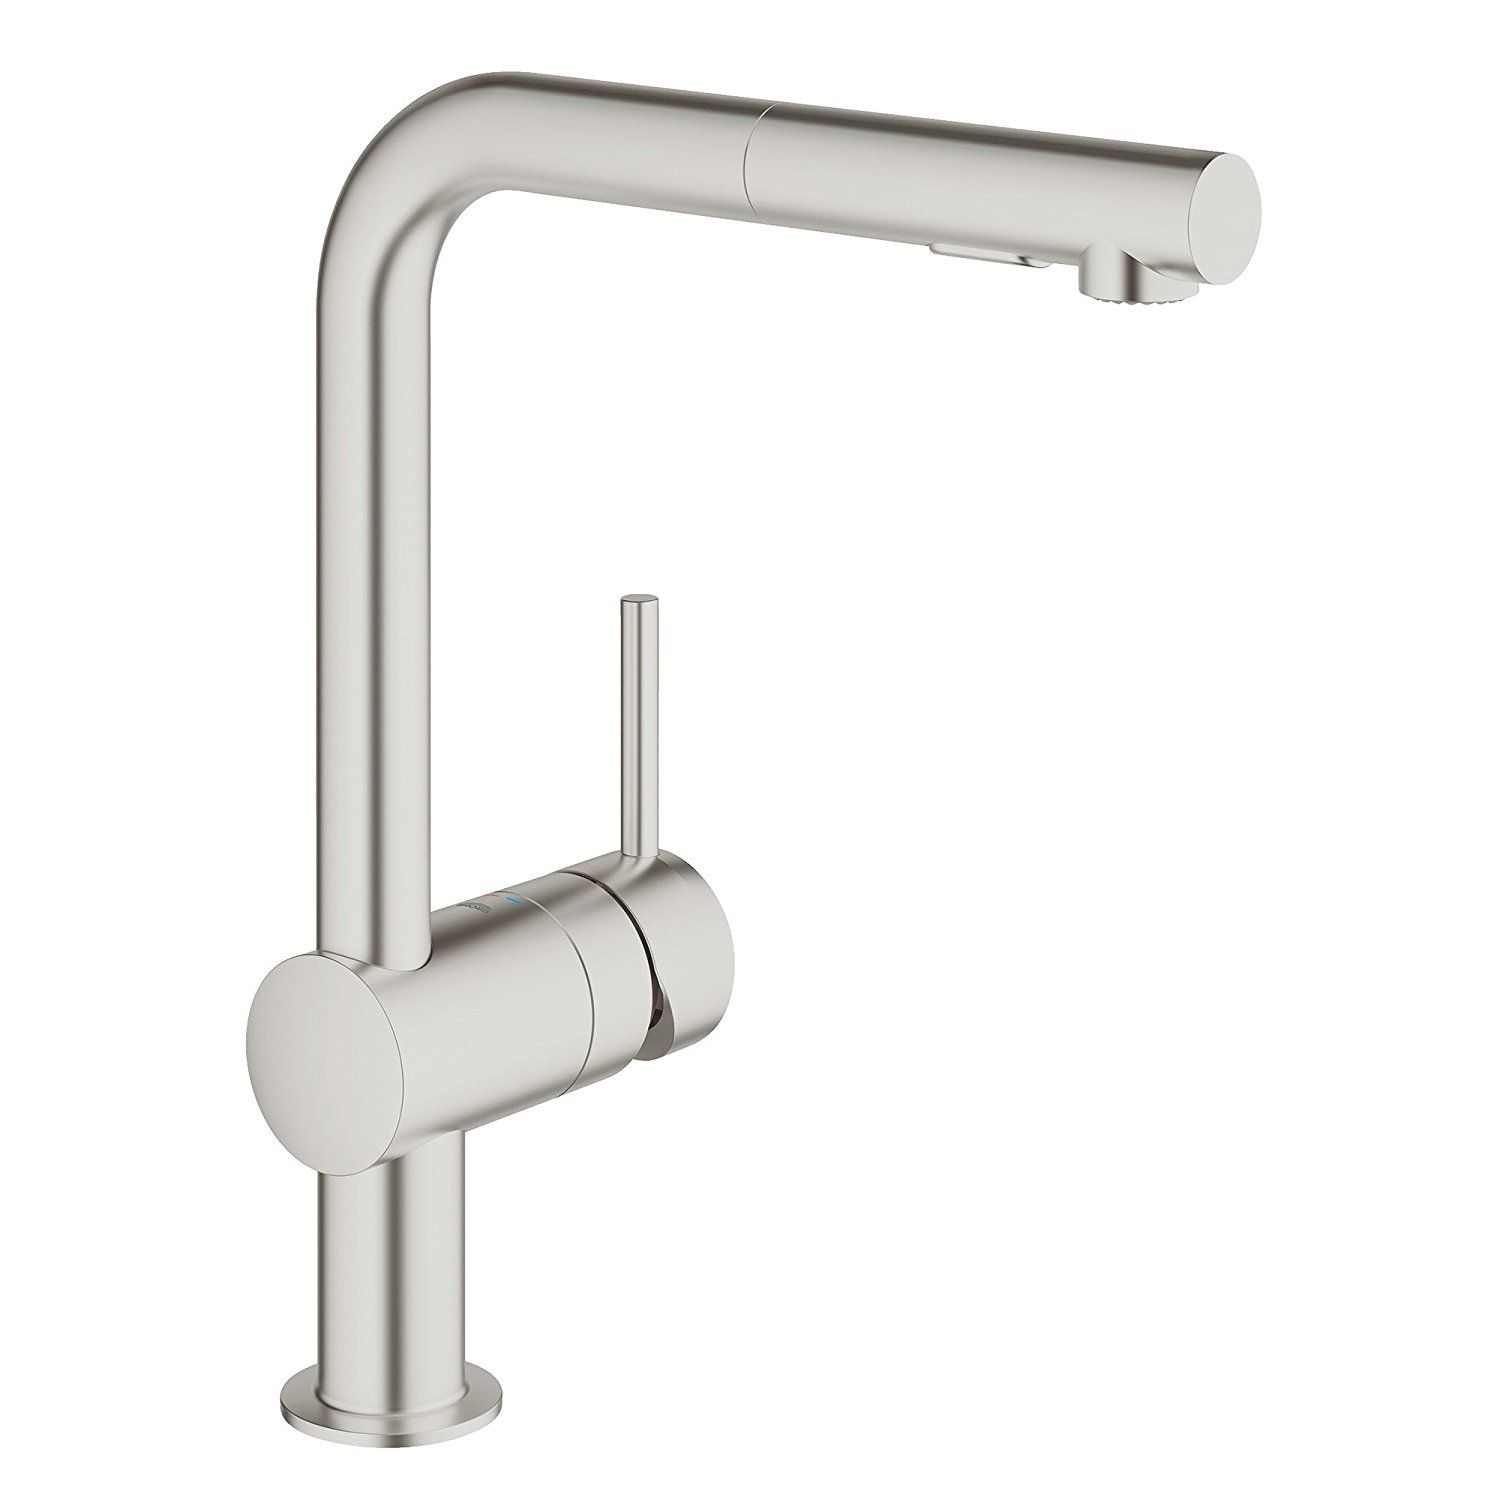 Grohe dc minta pullout kitchen faucet super steel amazon